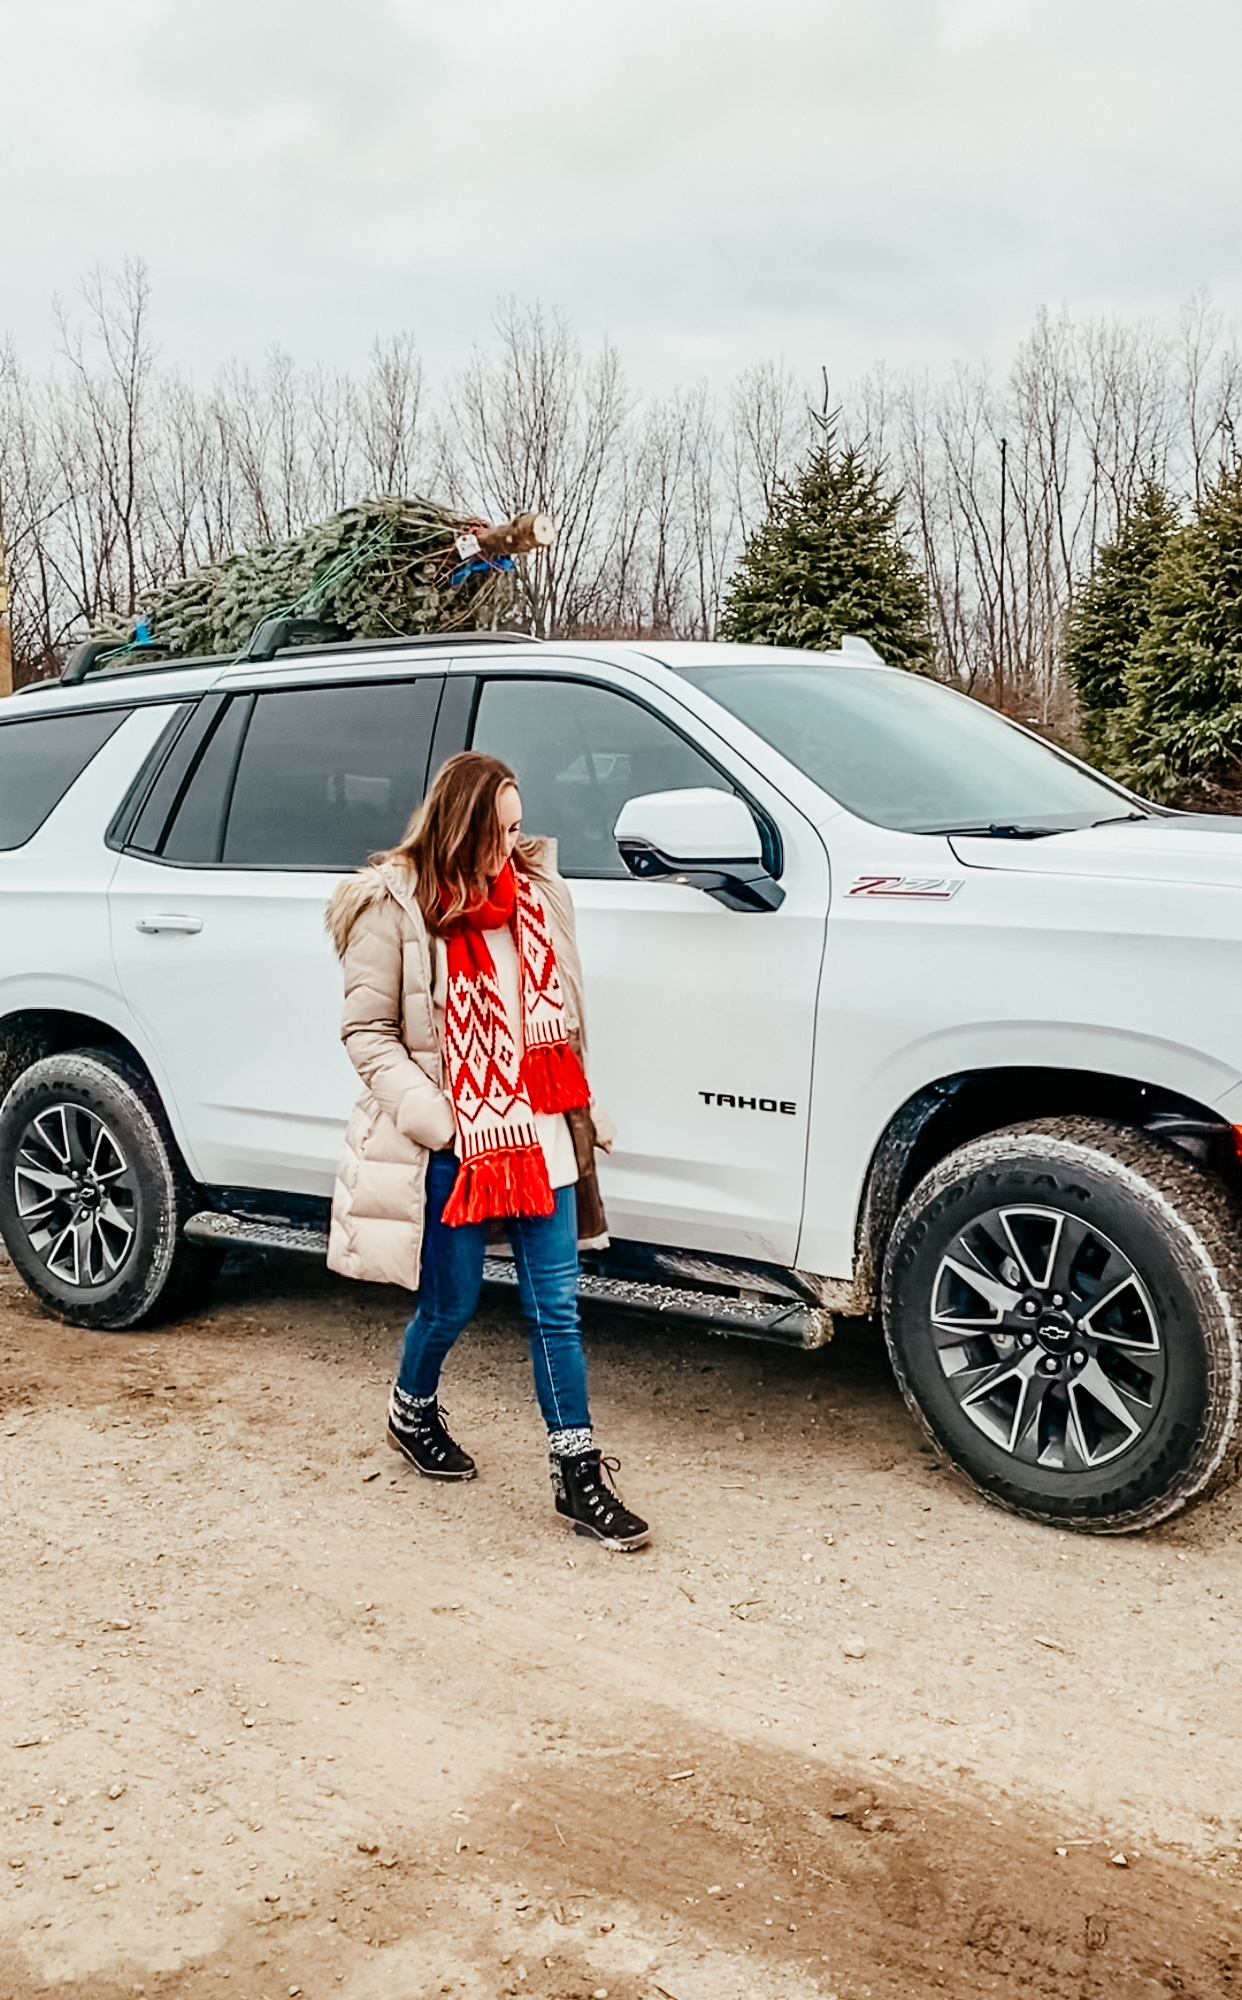 Winter outings with the family | Daily Splendor Life and Style Blog | #familychristmas #holidayfestivities #familyadventures #chevytahoe #2020activities #Christmastree #momlife